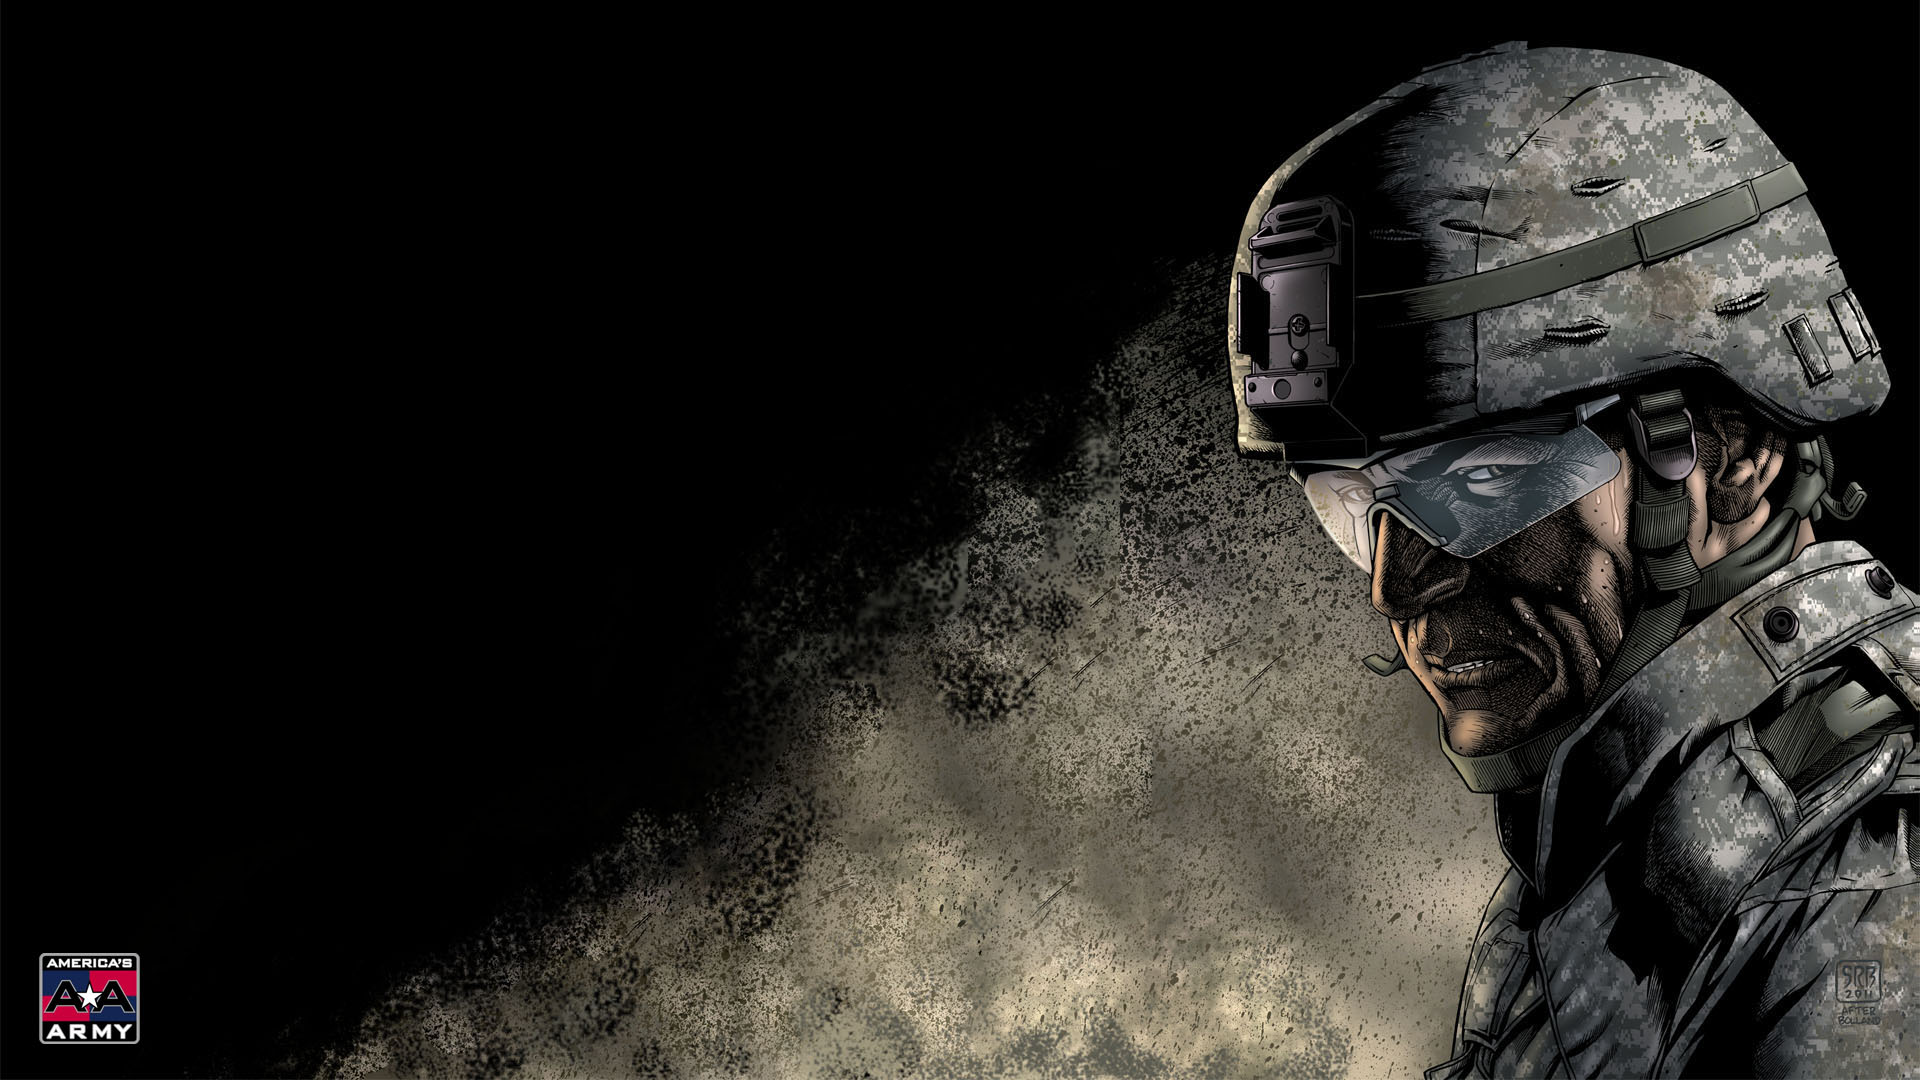 Army Wallpaper Full HD